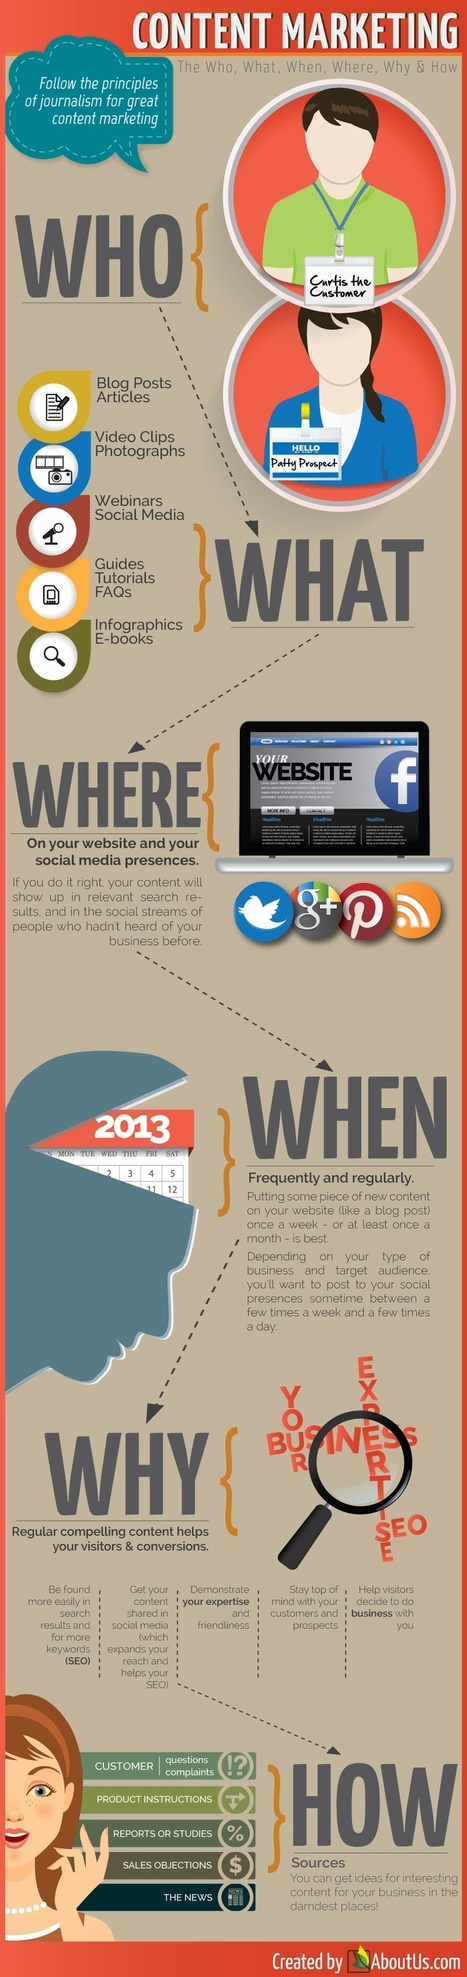 Content Marketing Is The New SEO [Infographic] | Social Media Useful Info | Scoop.it